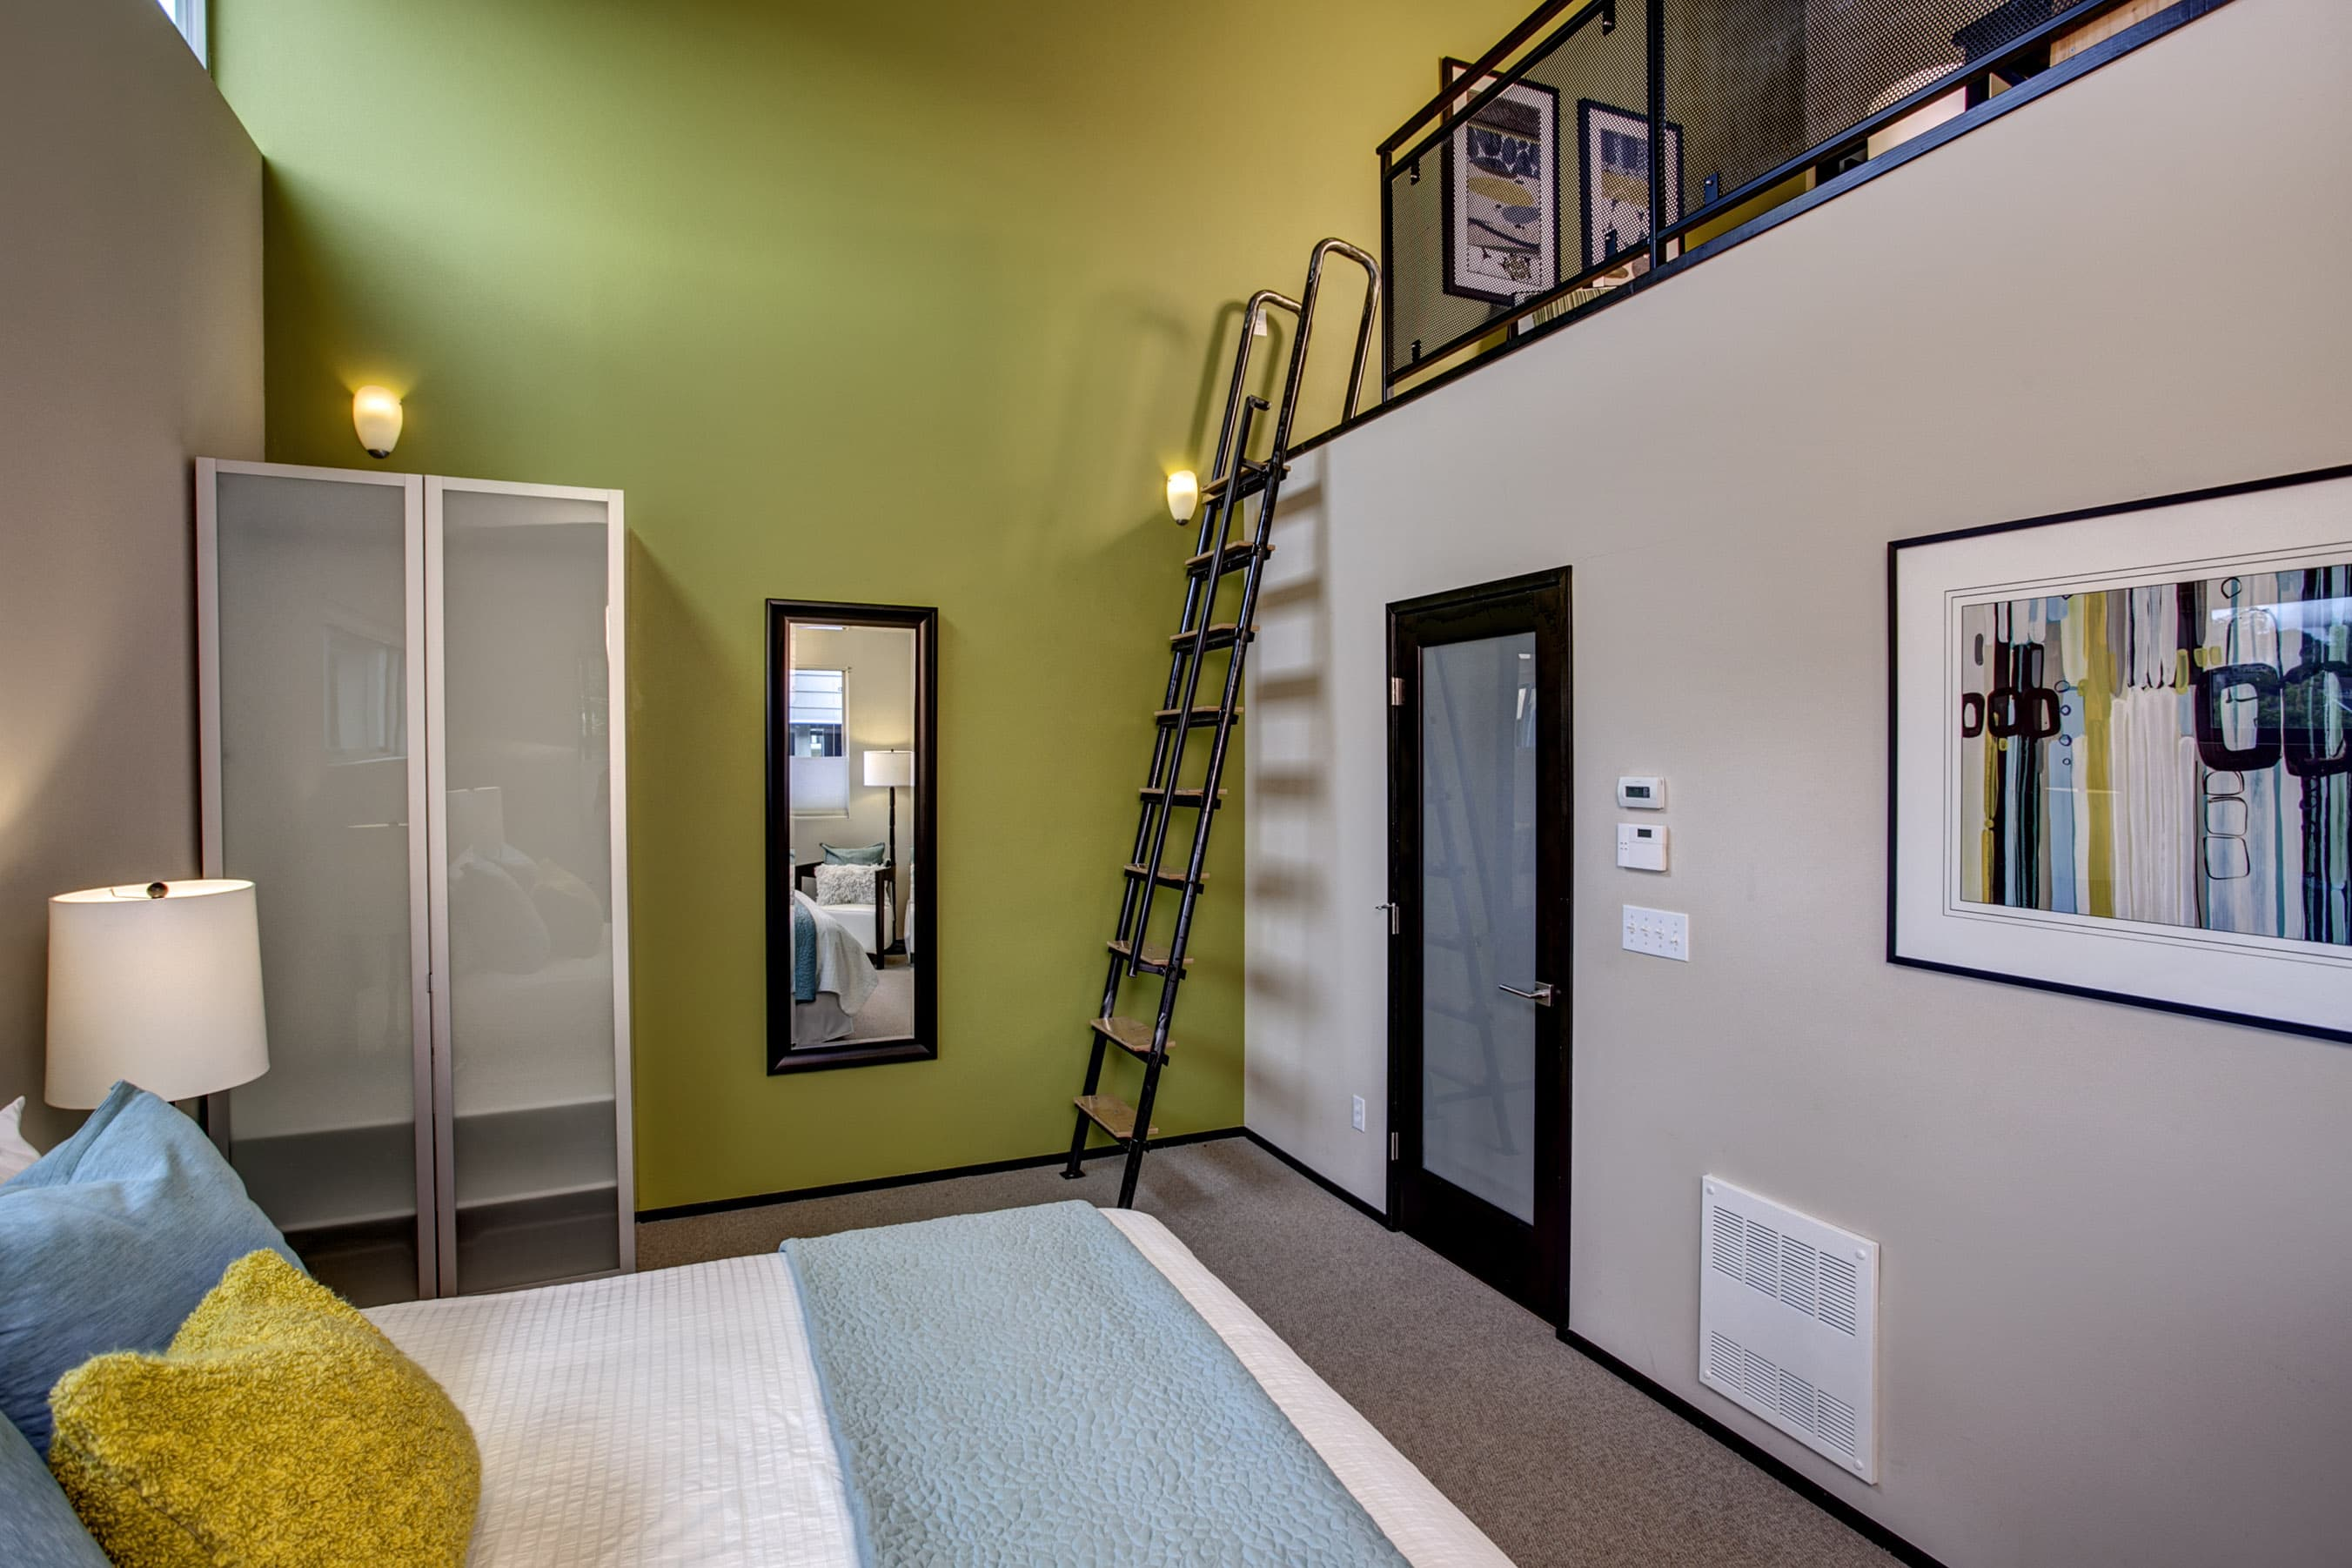 seattle loft homes are found in the most interesting places team the pike lofts were originally built as a loft condo community the divas were lucky enough to sell a stunning view loft open one bedroom